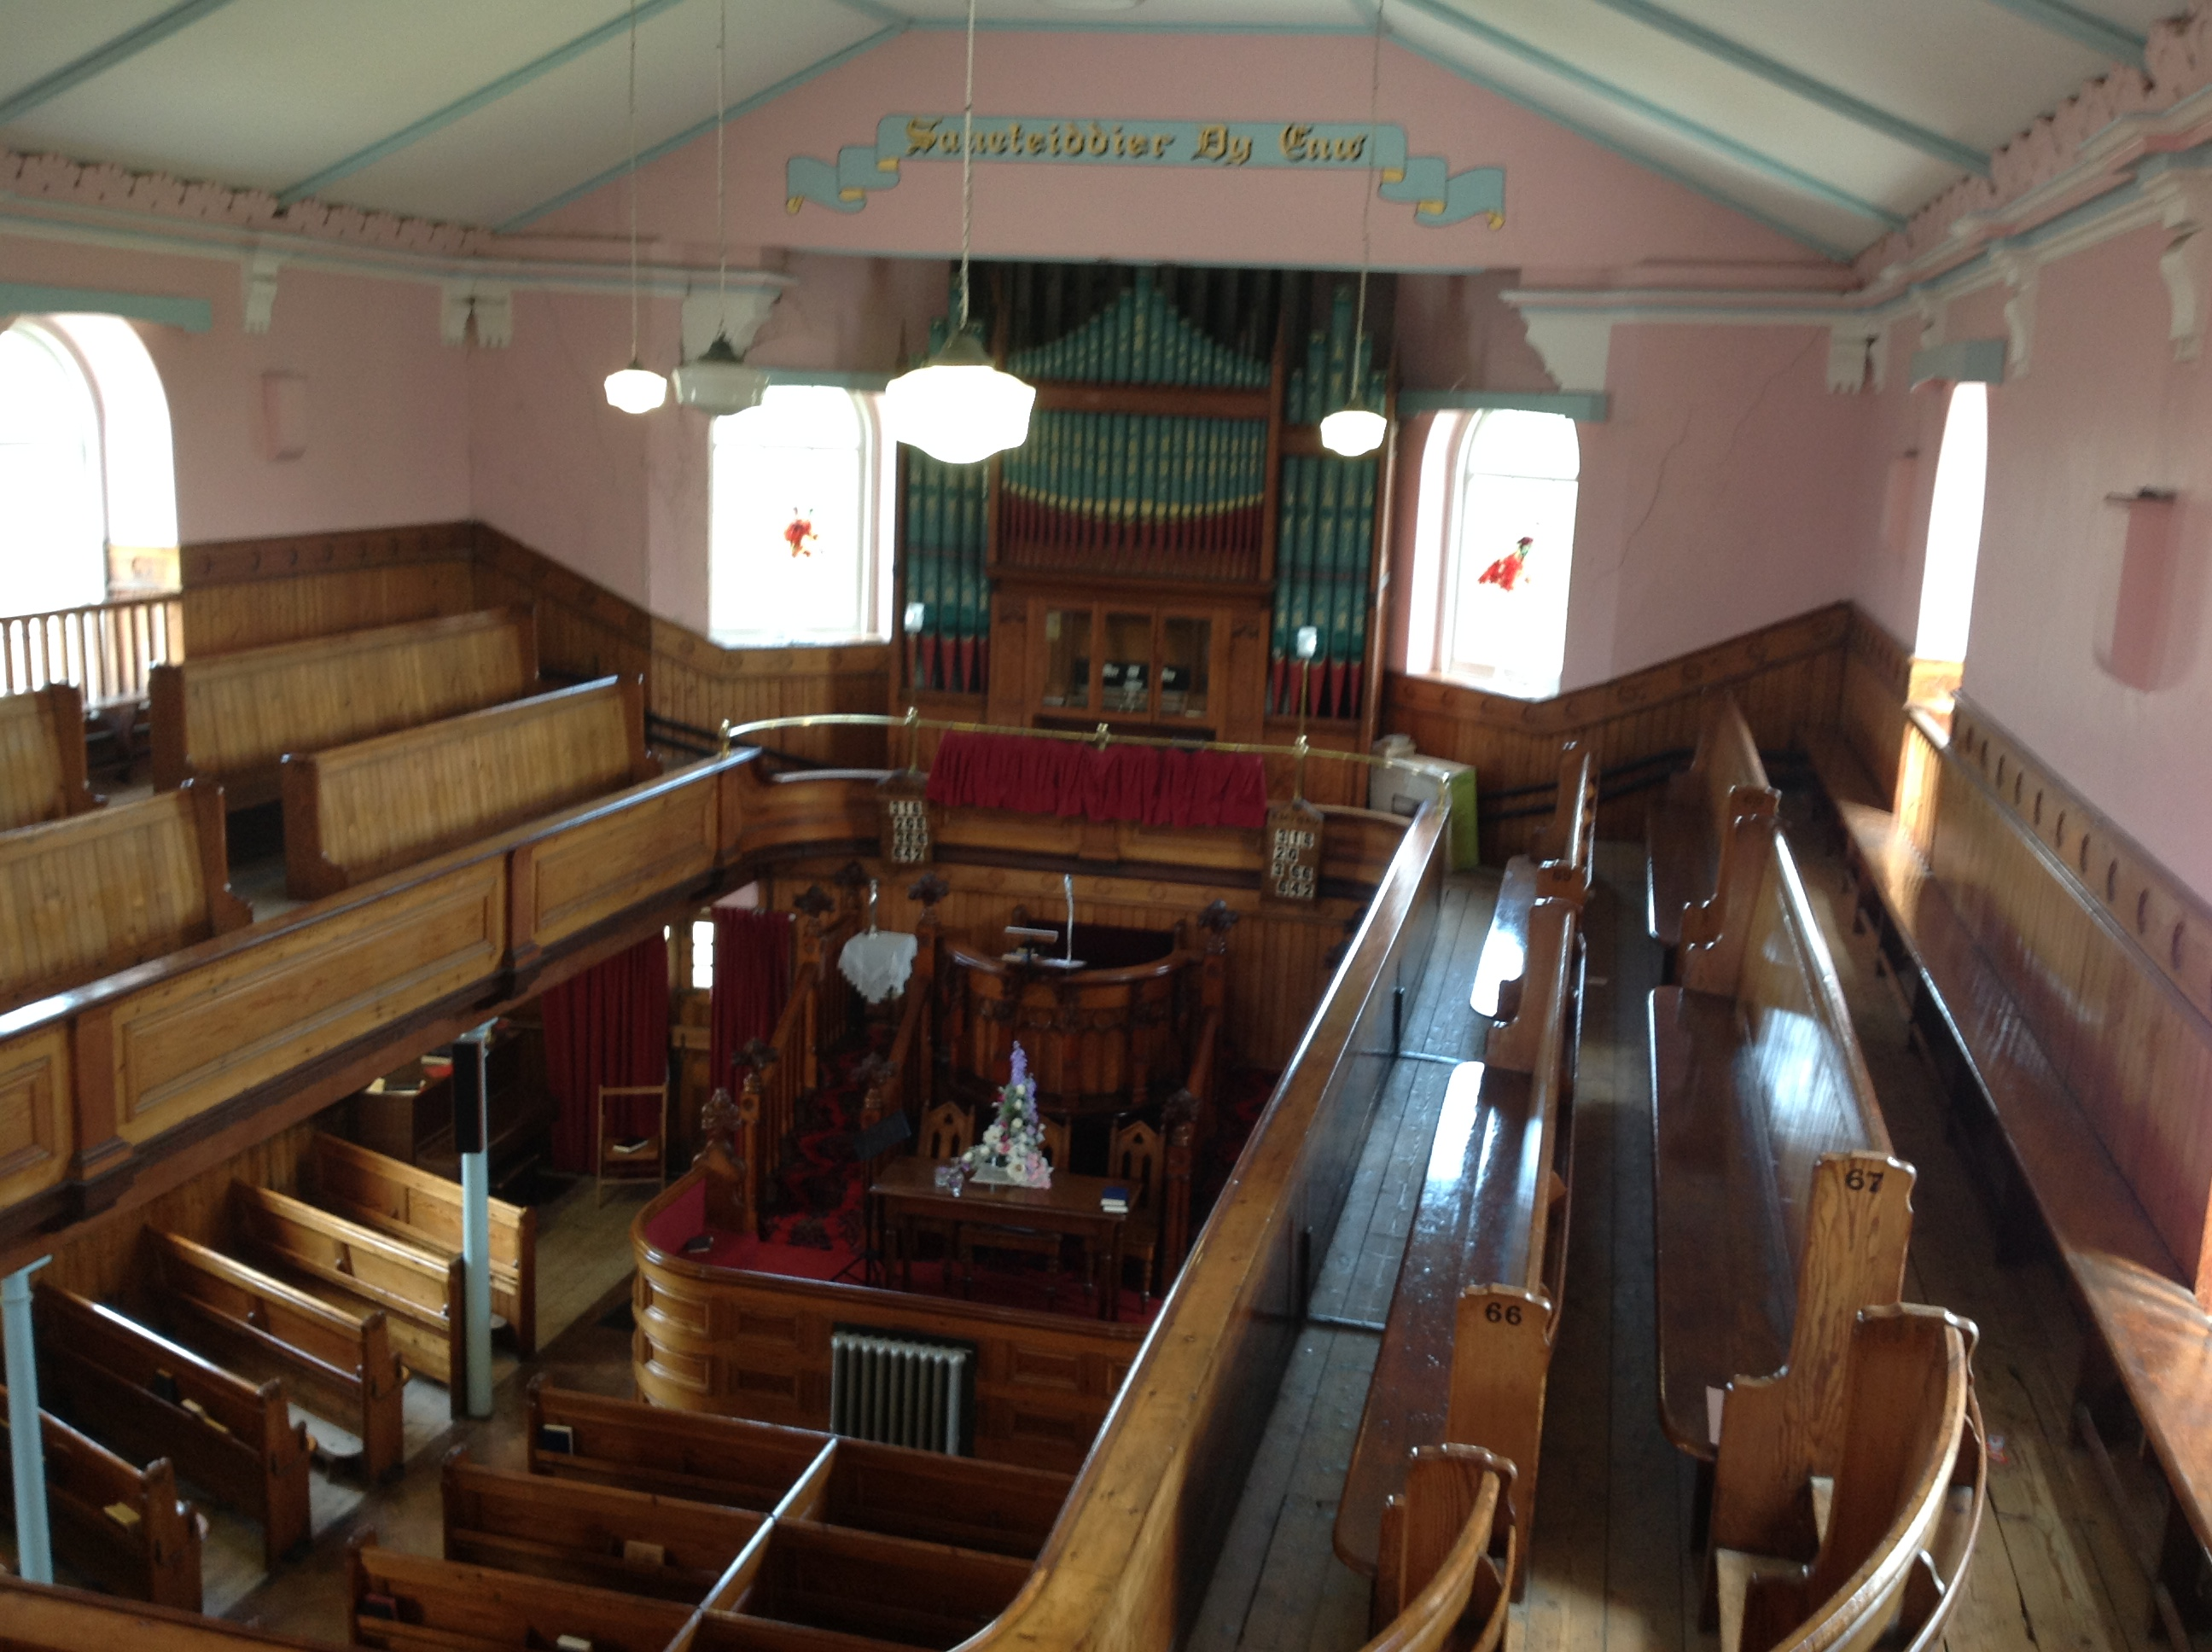 Upstairs view of organ & pulpit